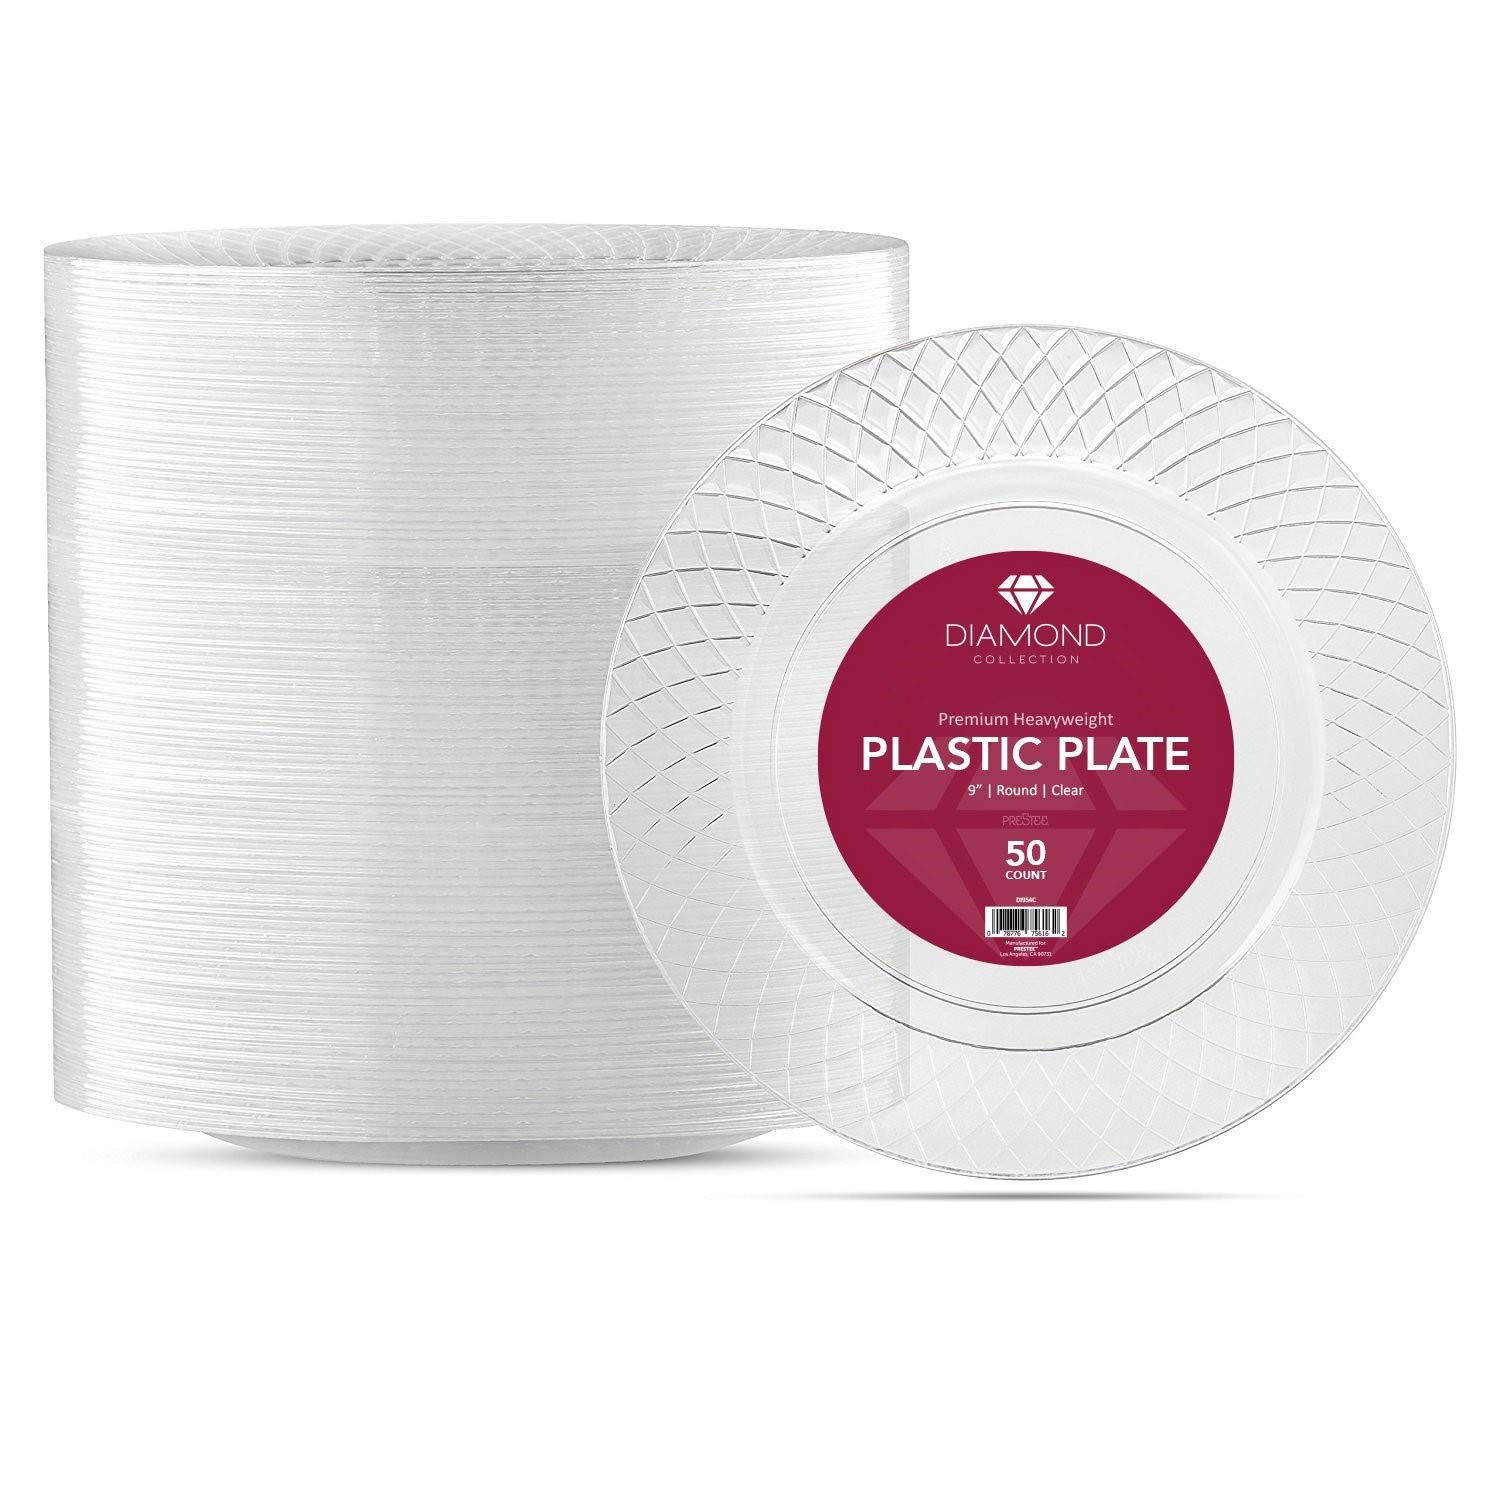 50 CRYSTAL CLEAR PLASTIC PLATES | 9 Inch Disposable Plates | Fancy Dinner Plates | Elegant Luncheon plates | Hard Round Party Plates | Heavy Duty Wedding Plates | Premium Catering Plates [Diamond] by Prestee